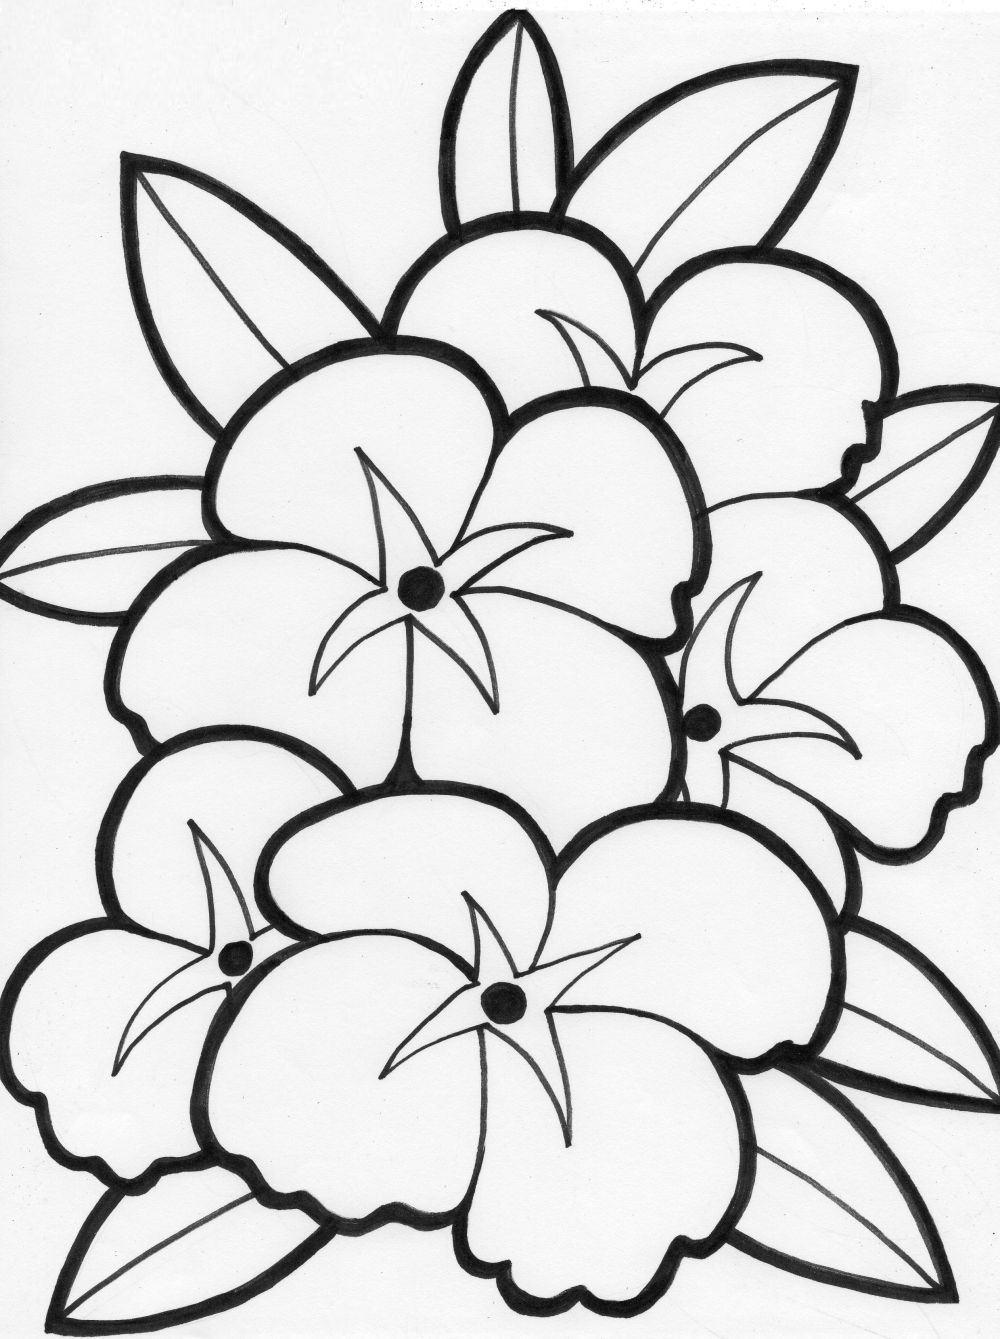 Summer Flowers Printable Coloring Pages - Free Large Images - Free Printable Flower Coloring Pages